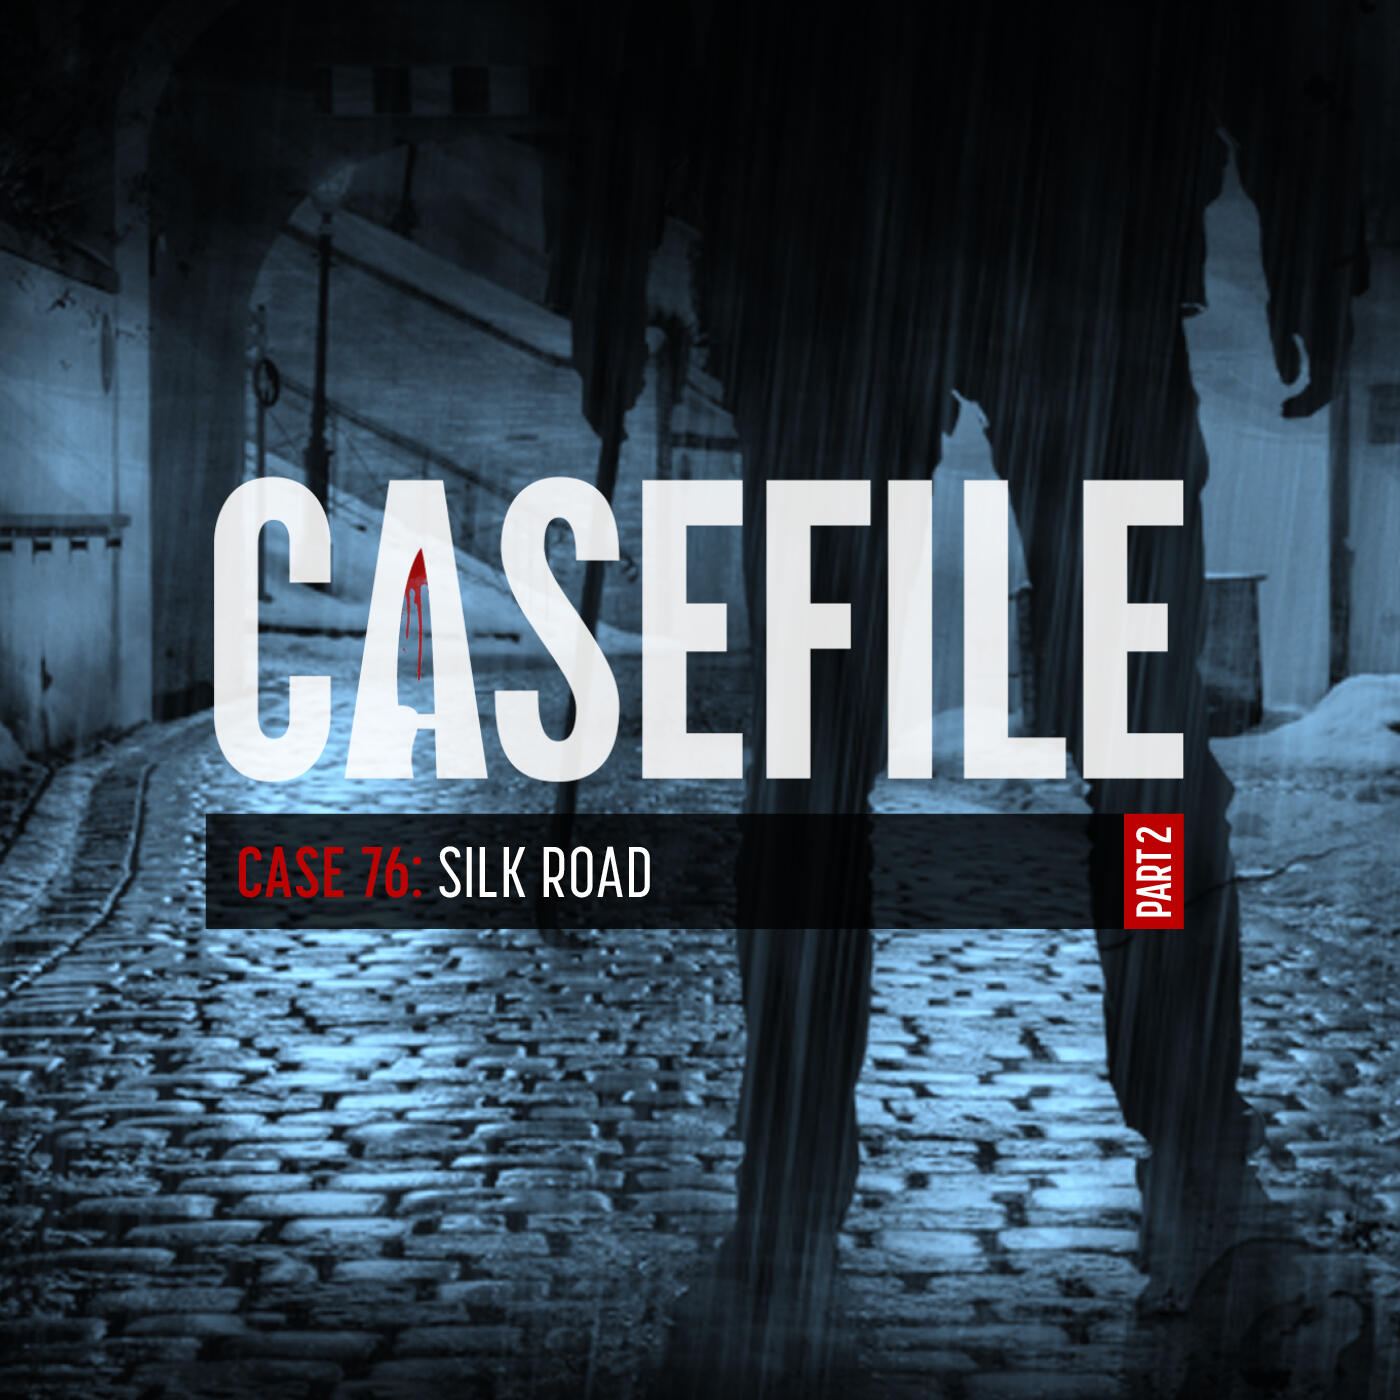 Case 76: Silk Road (Part 2)